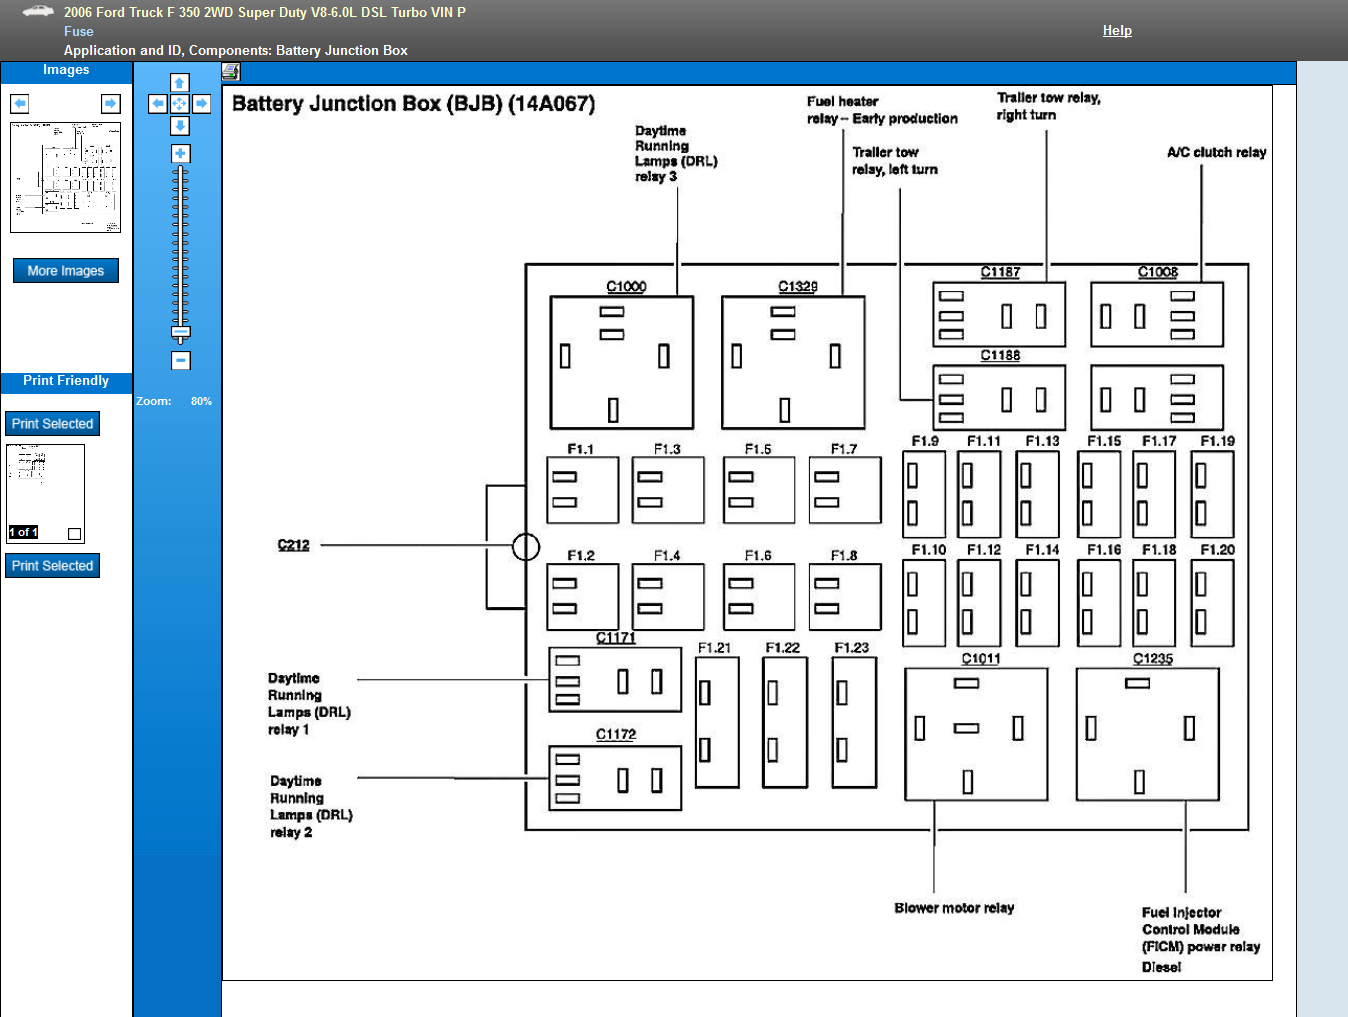 2006 F350 Powerstroke Fuse Box Diagram Wiring Library F250 Diesel Fuses I Need A Of The On My Power Stroke 99